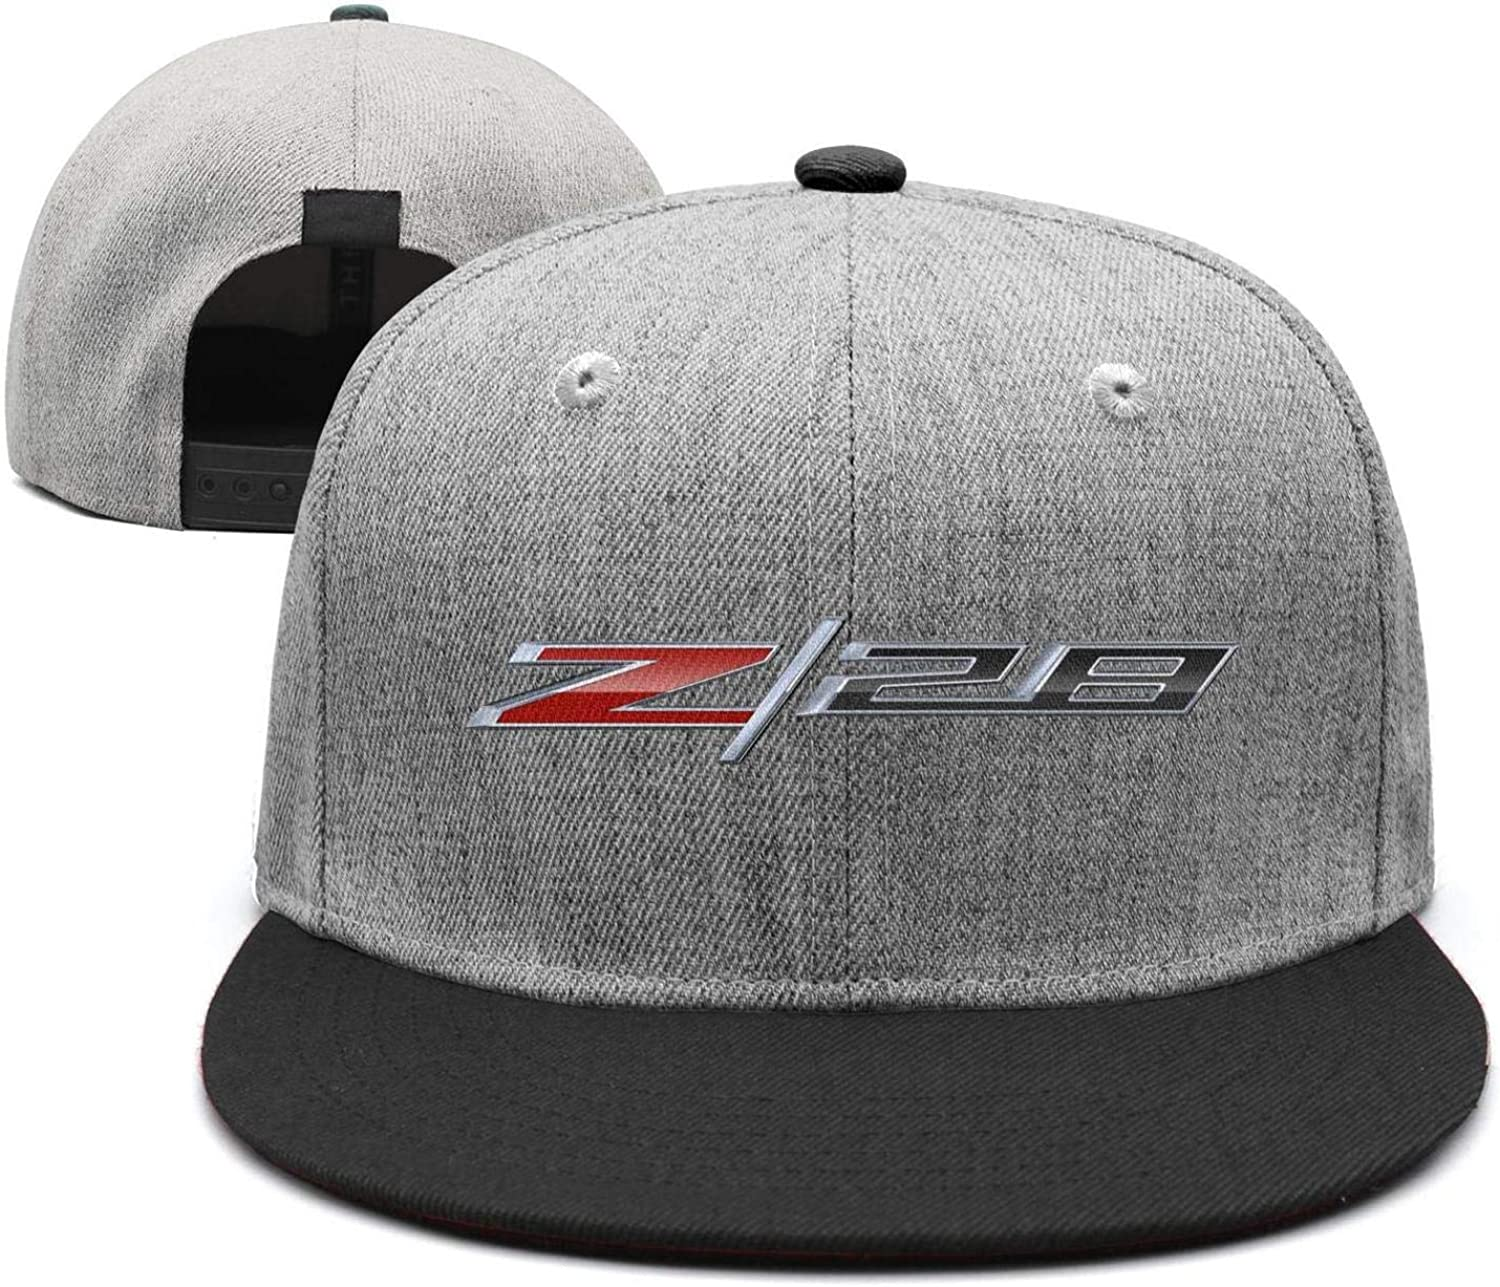 Chevrolet Logo Unisex Men Stylish Hip Hop Hat Outdoor Rock Cap